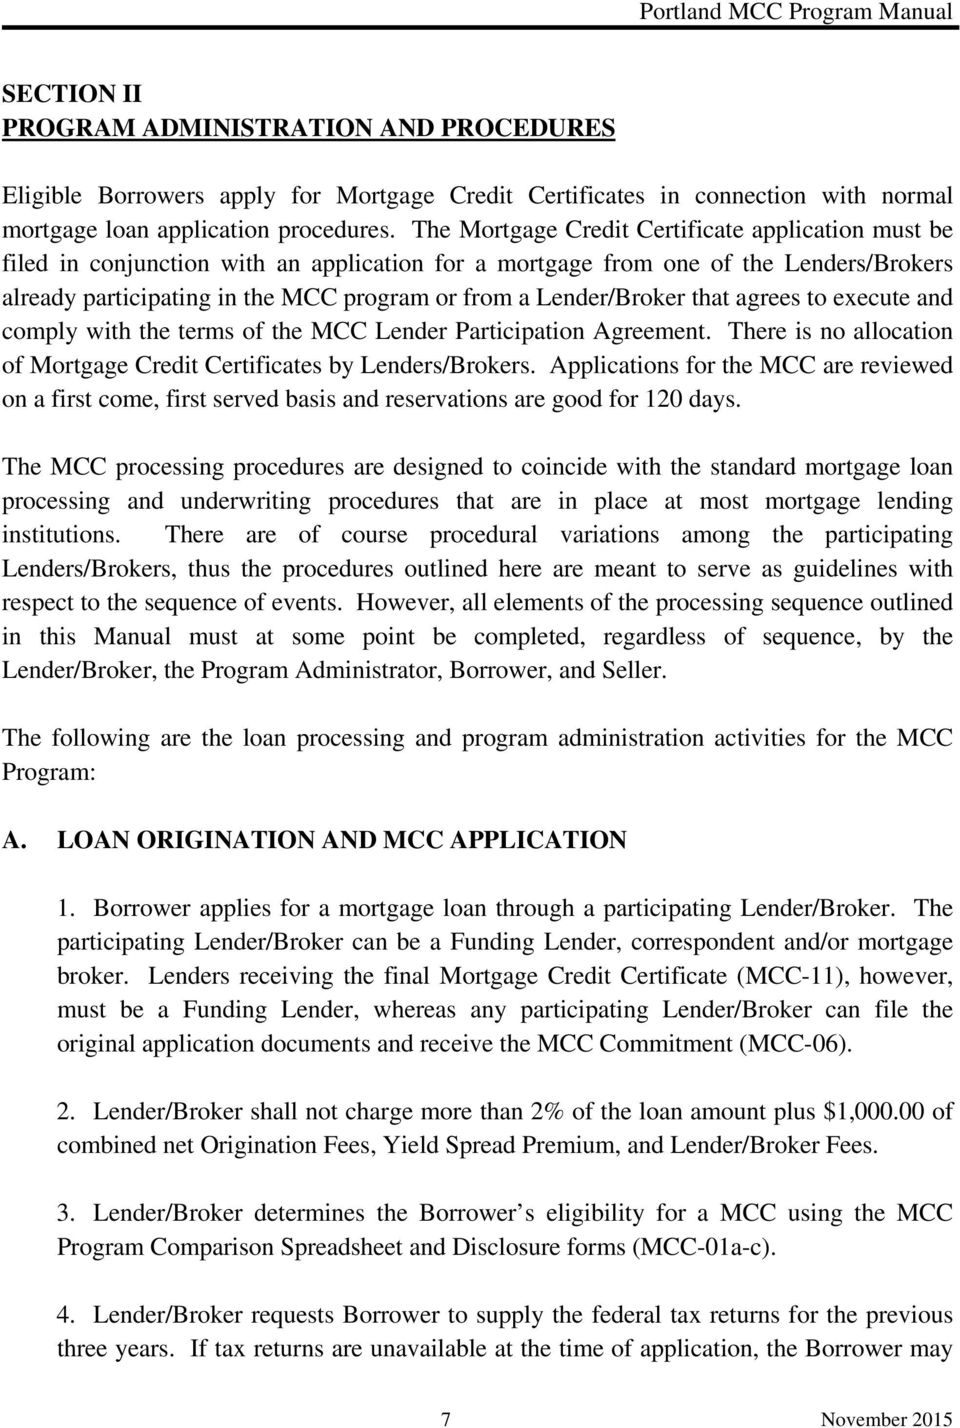 Mortgage Credit Certificate Program Pdf